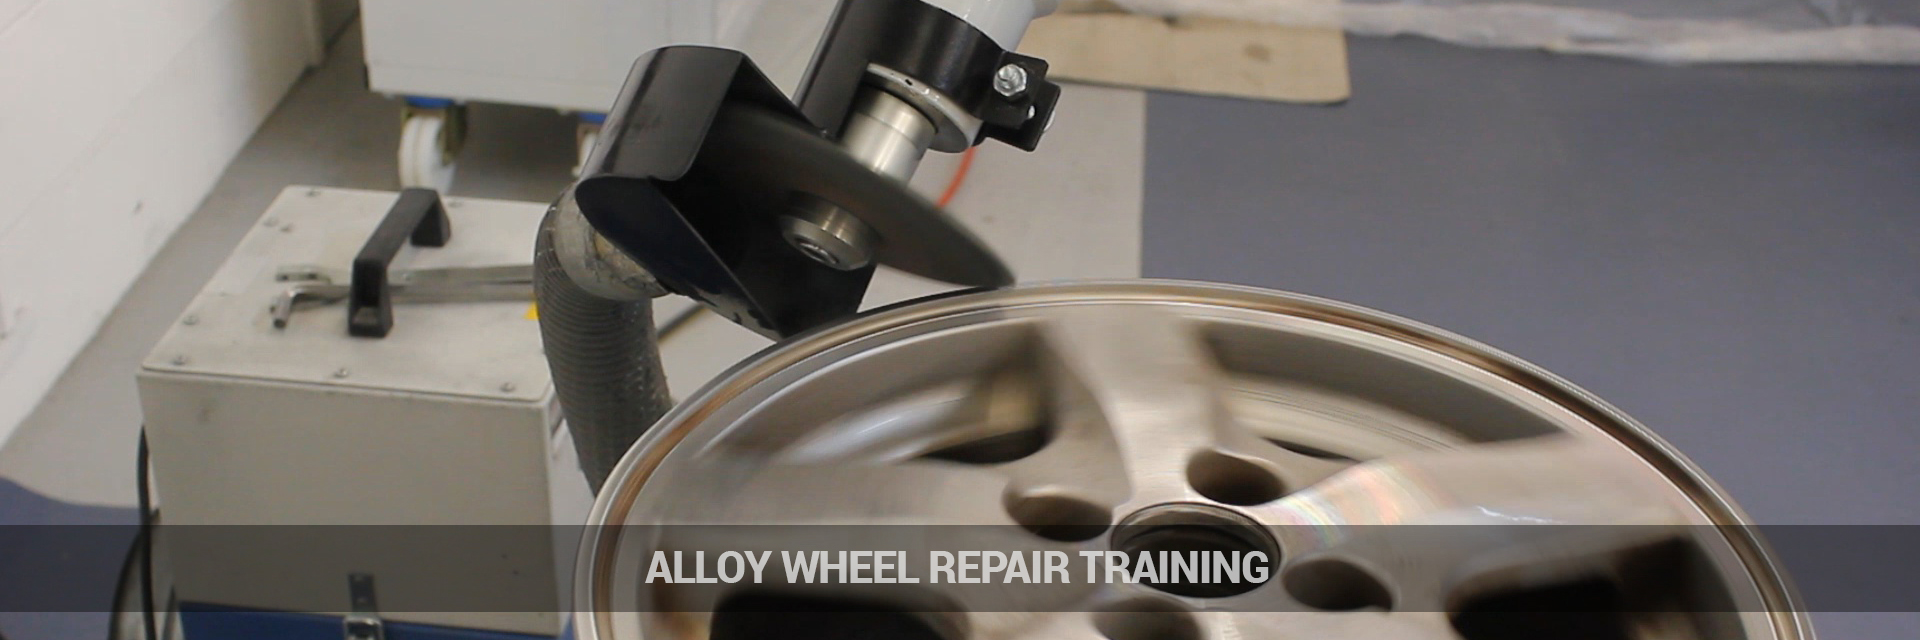 Ayce Systems Alloy Wheel Repair Training courses